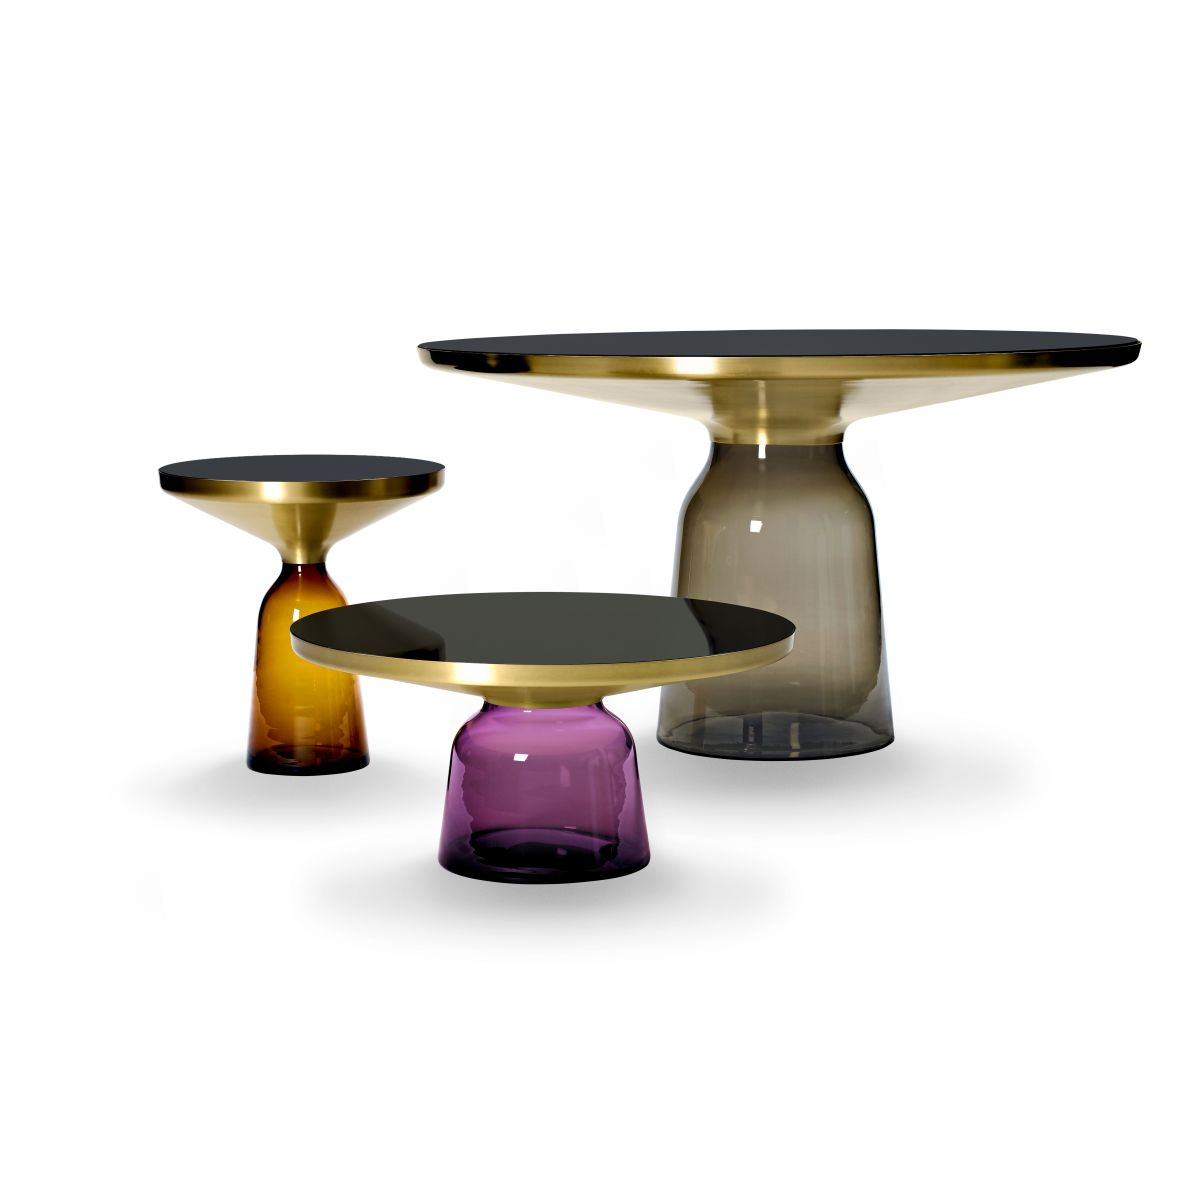 ClassiCon-bell-side-table-orange-bell-coffee-table-violet-bell-high-table-smoke-grey-group